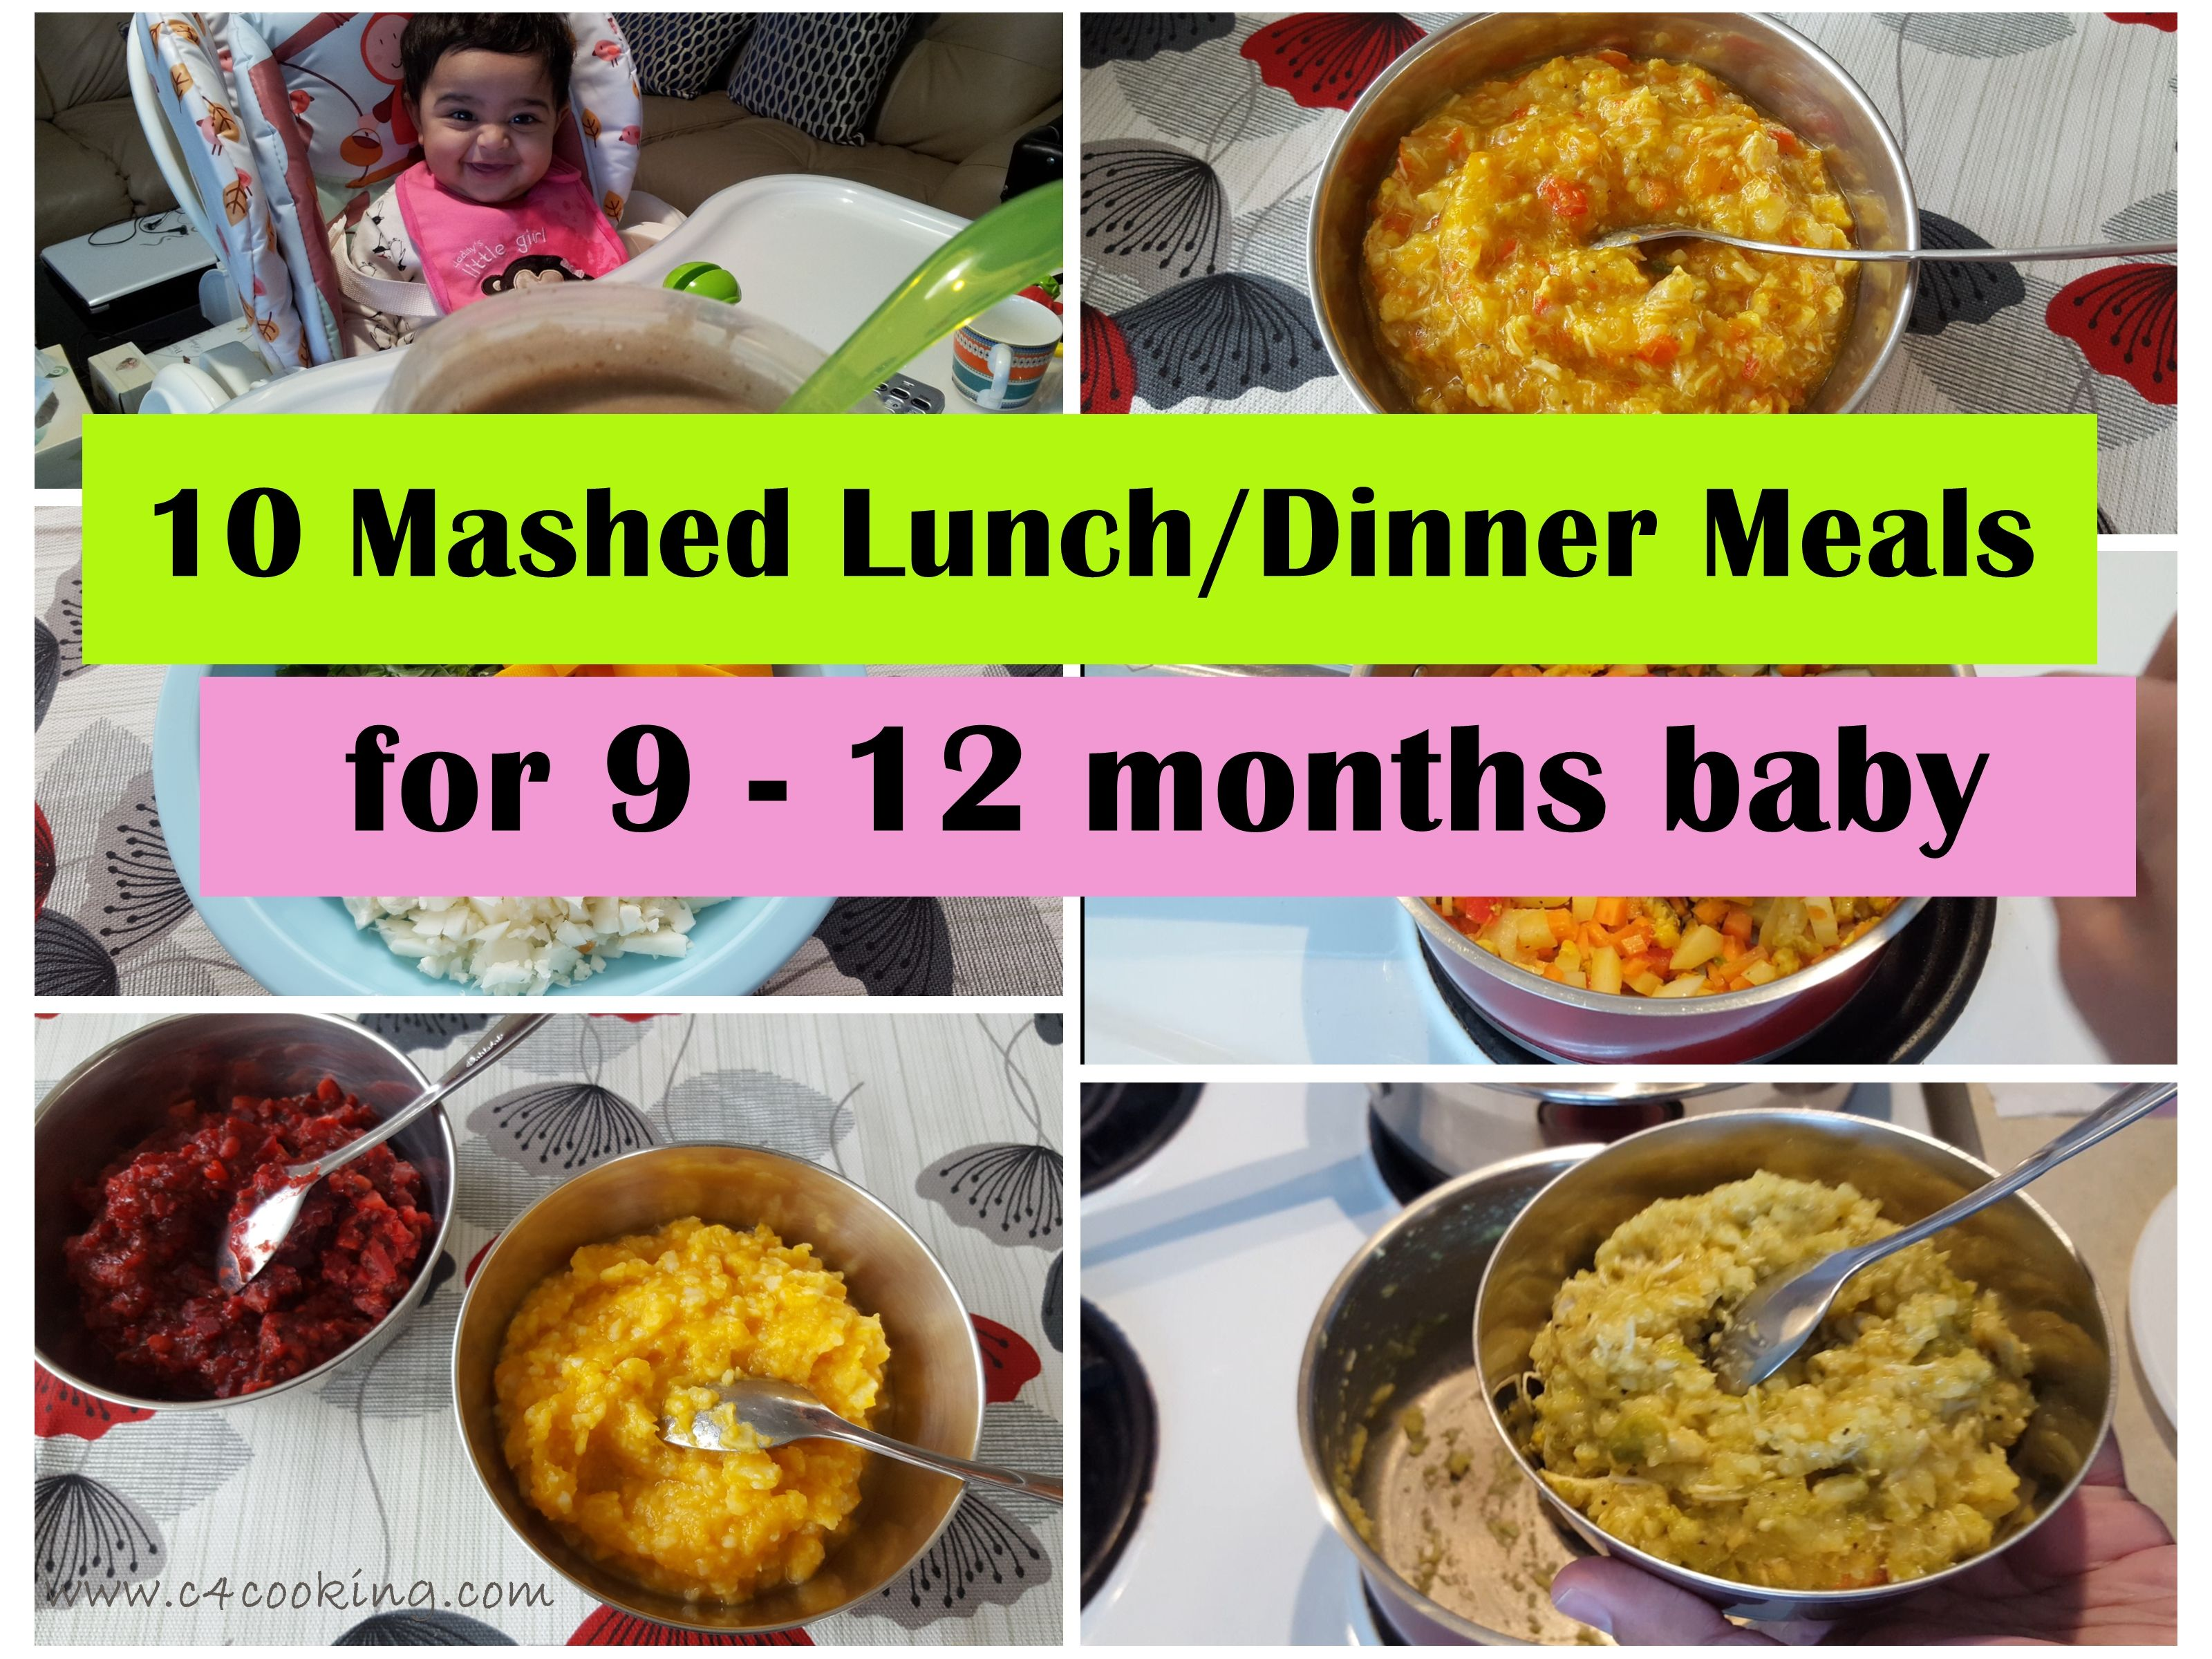 10 mashed meals for 9 12 months baby baby bites pinterest 10 mashed meals for months baby forumfinder Choice Image